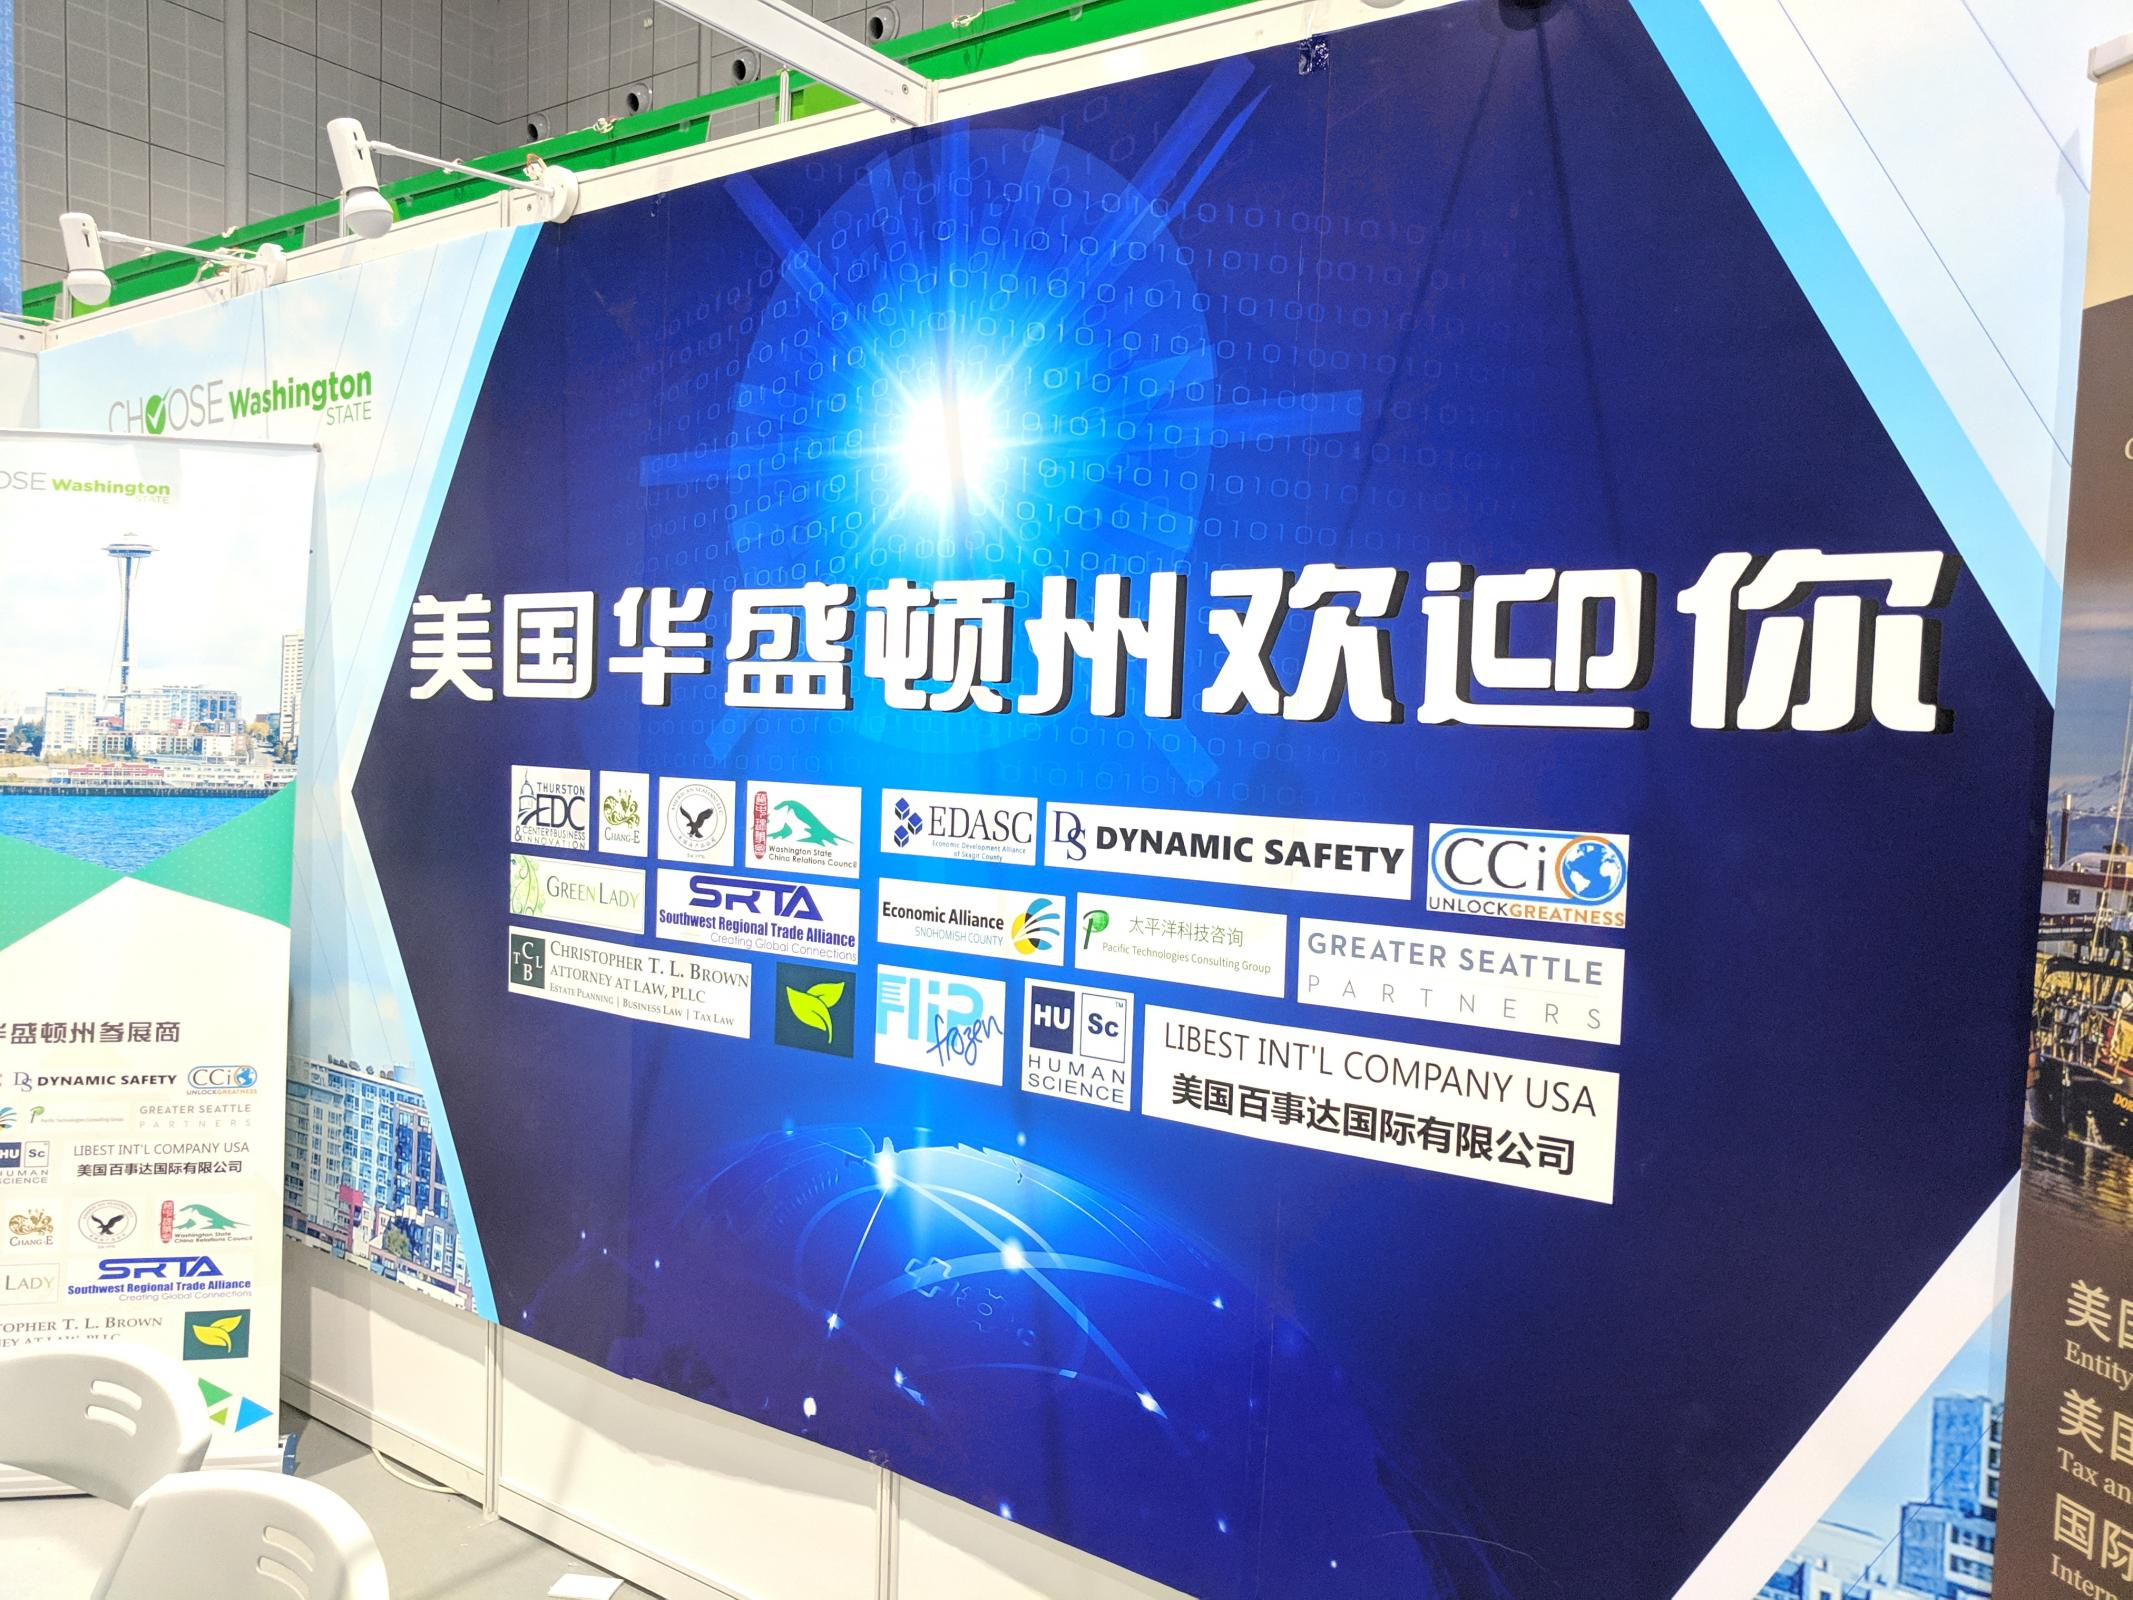 The 'Choose Washington' banner at the China International Import Expo in Shanghai, November 5-9, 2018.